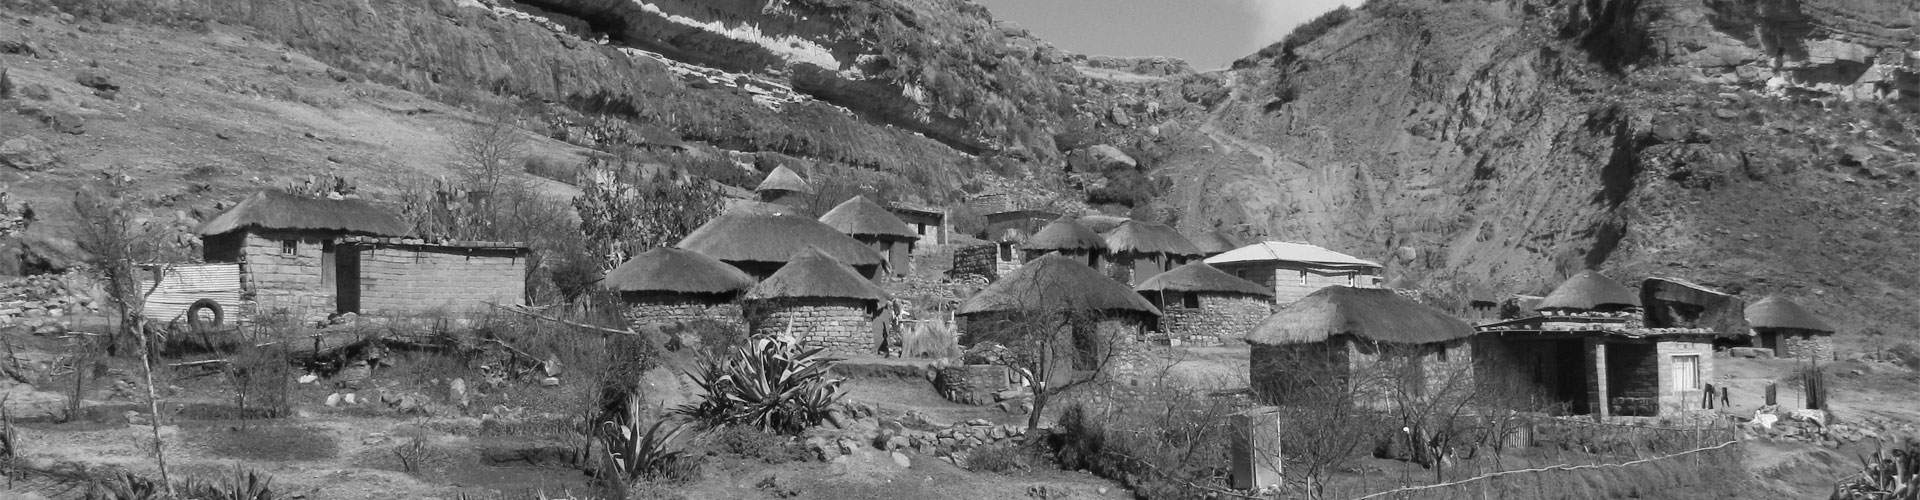 Lesotho Travel Advice